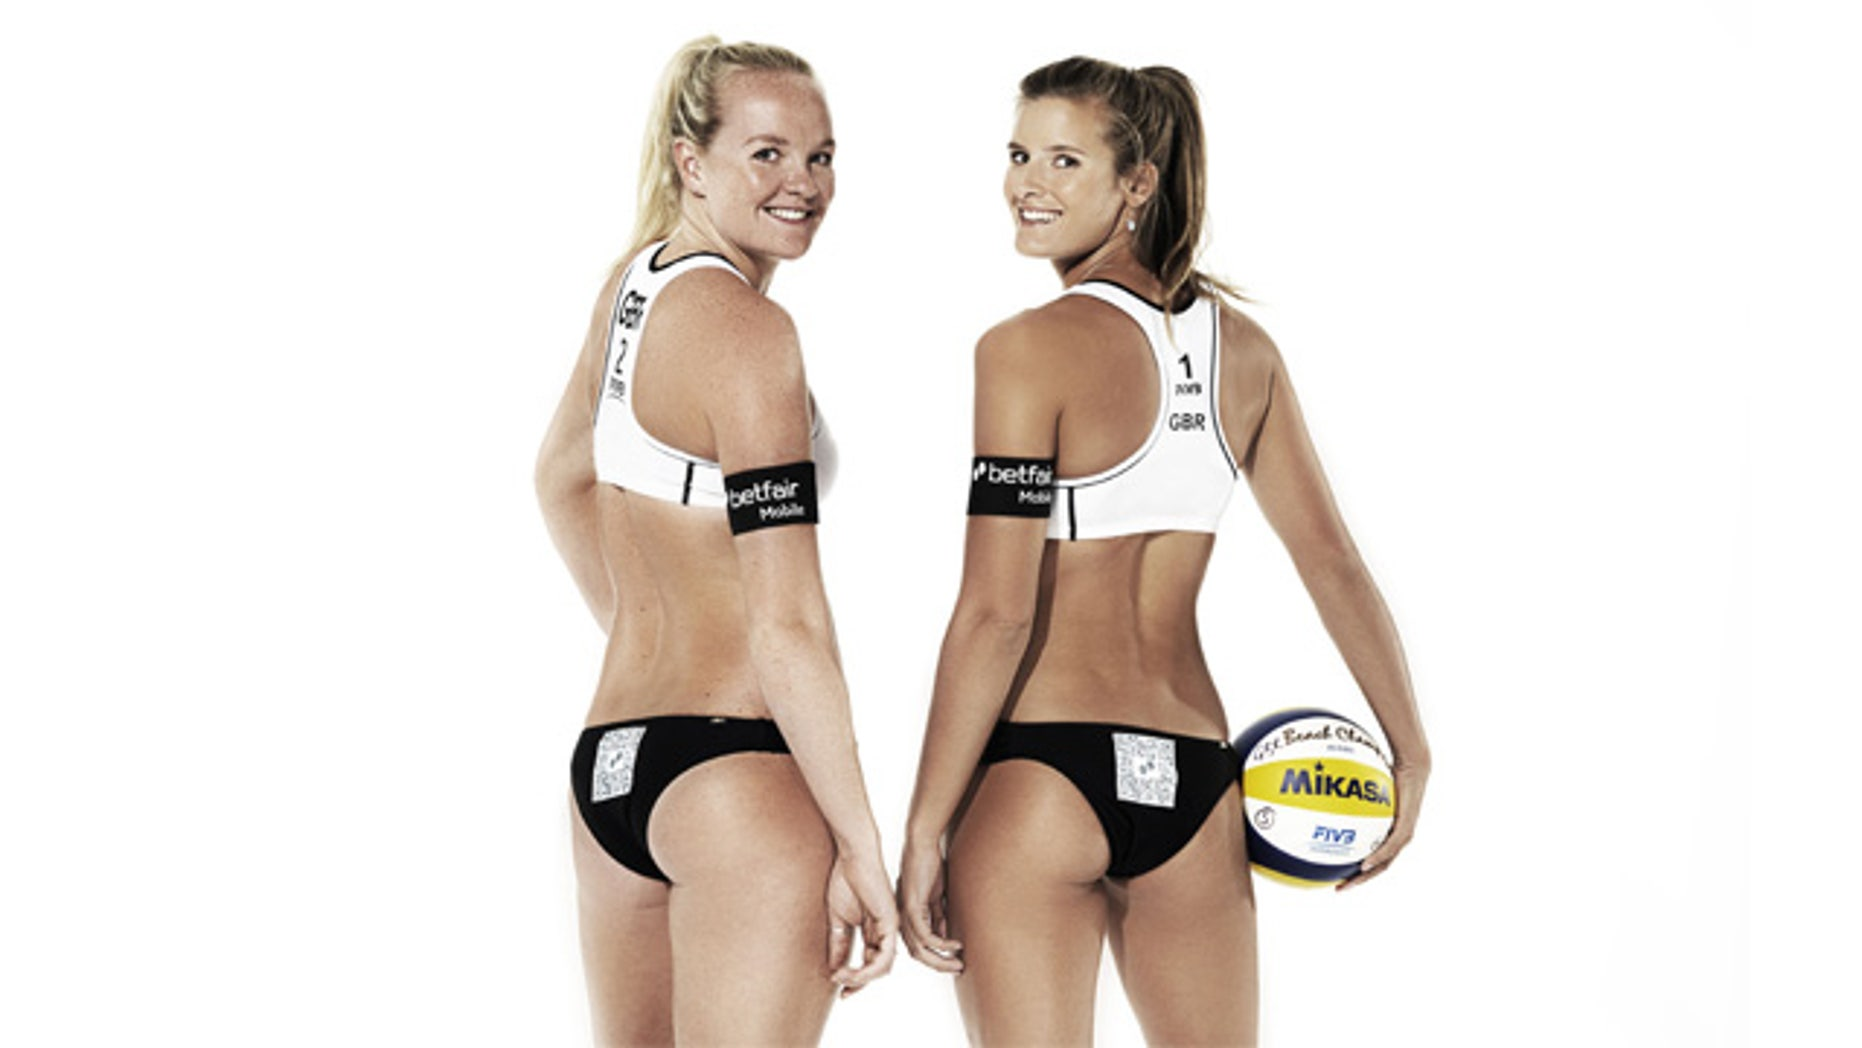 Shauna Mullin, left and Zara Dampney, show off a new ad campaign that features a Quick Response code on their bottoms.